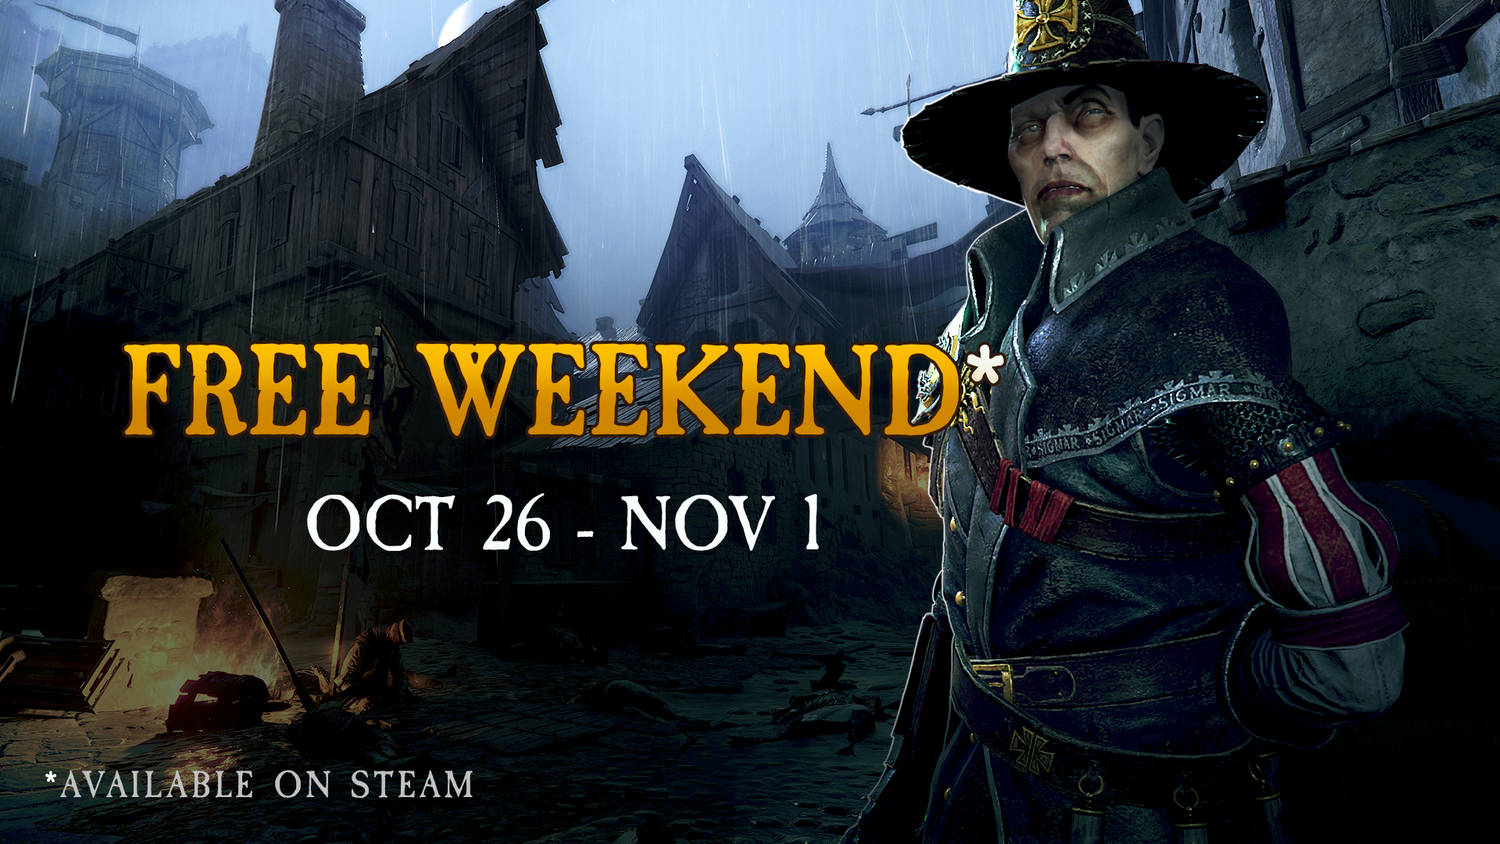 Free Weekend for a whole week!